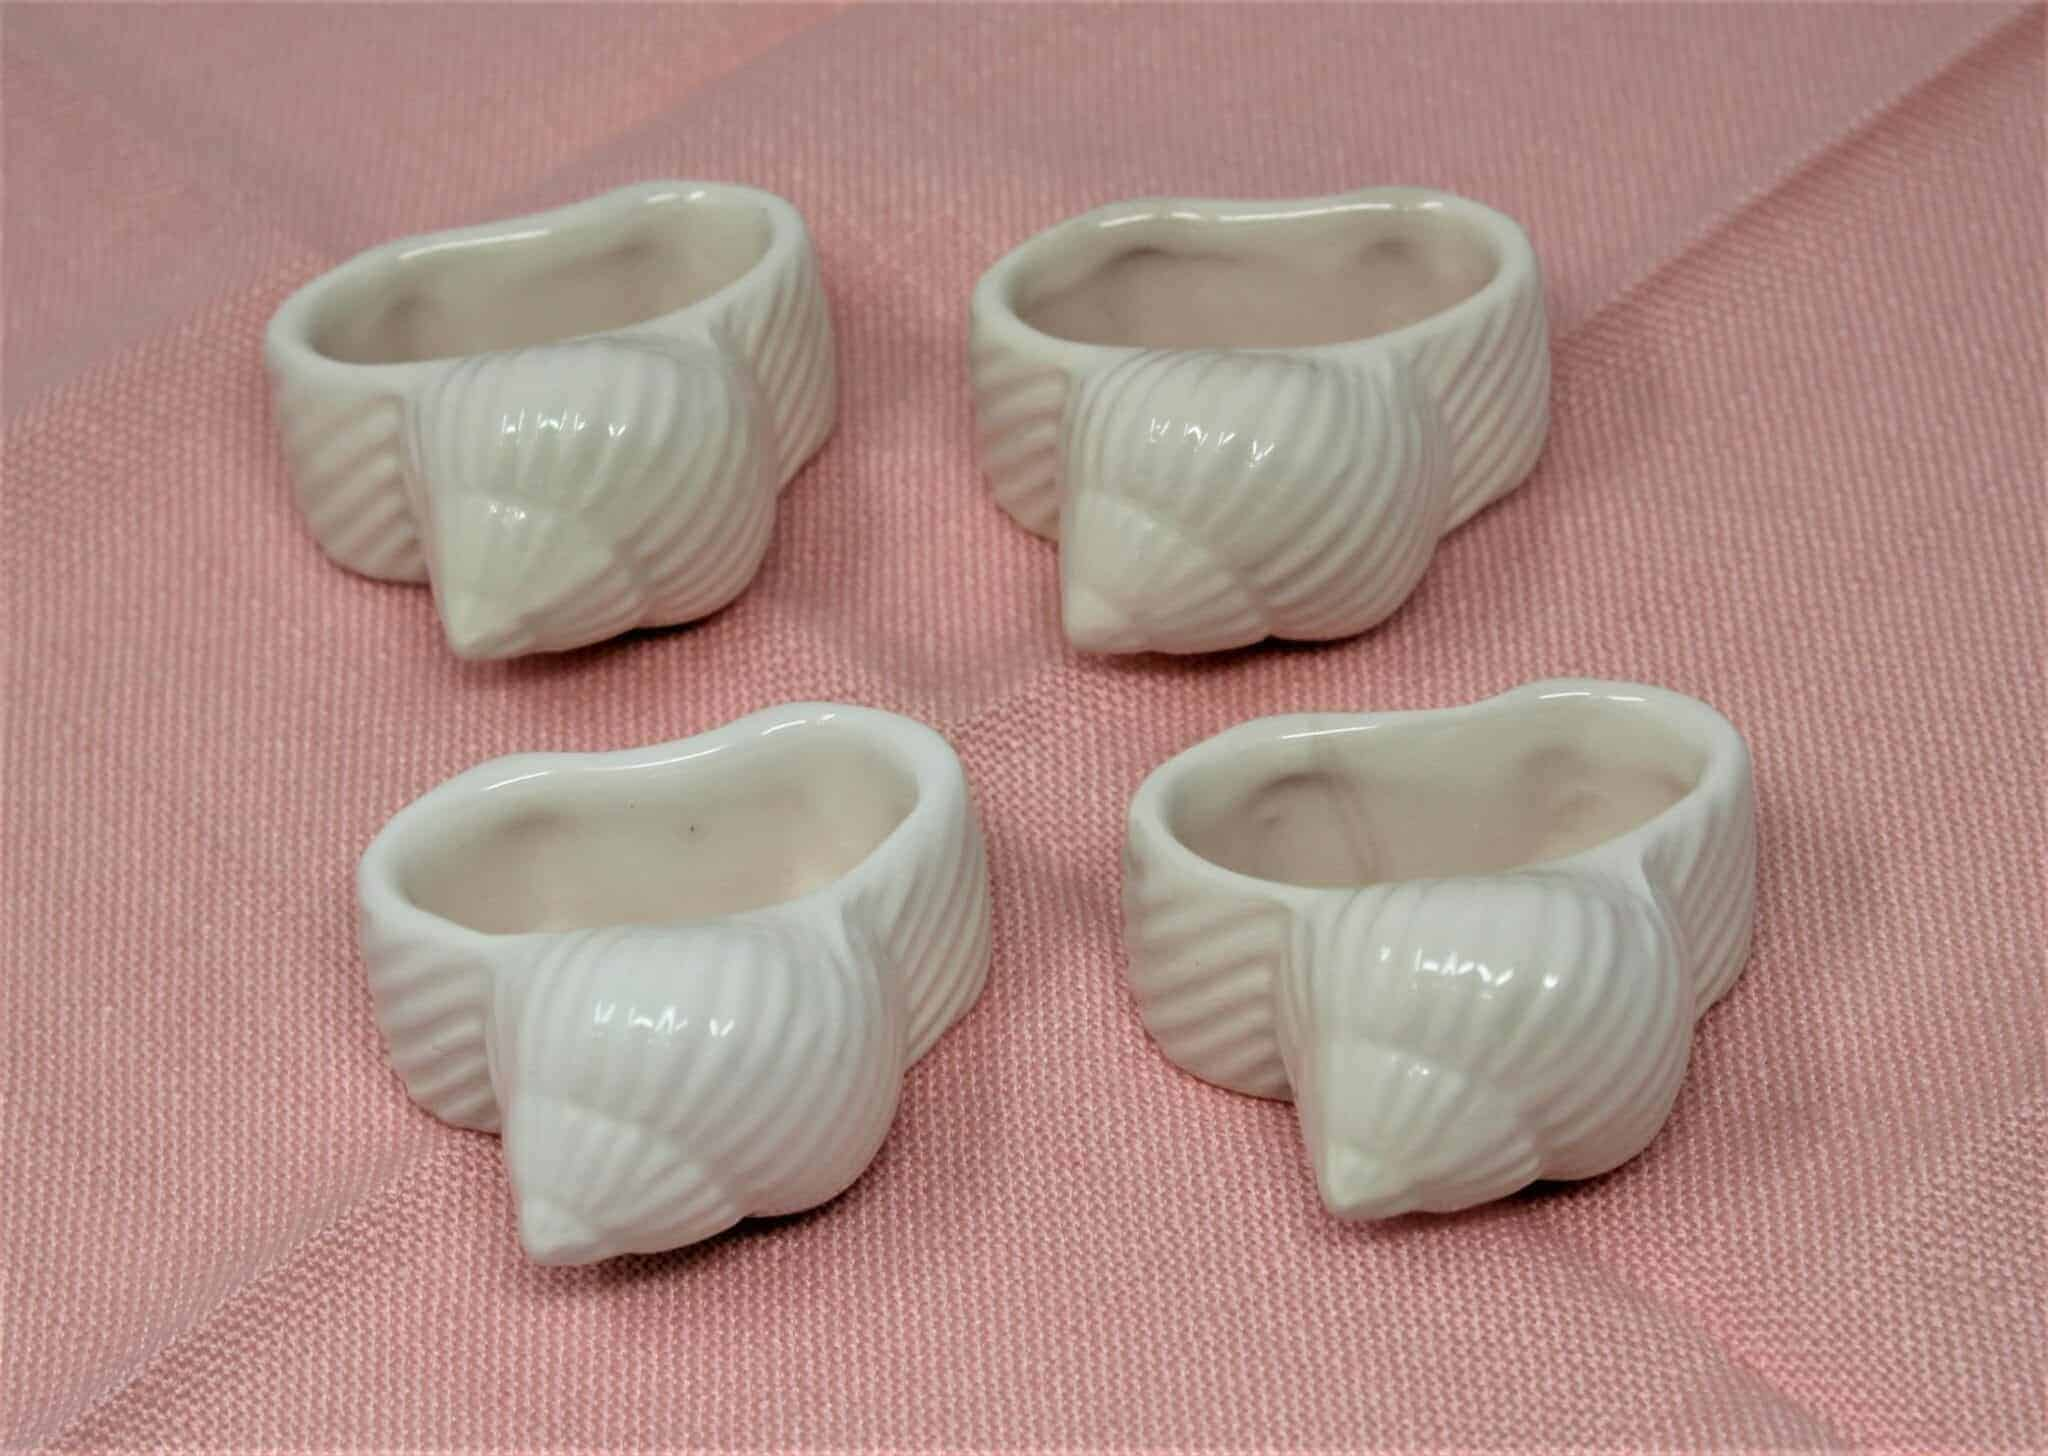 Napkin Rings Seashell Shell Coastal Pottery Barn Ceramic Set Of 4 Sold Antigo Trunk